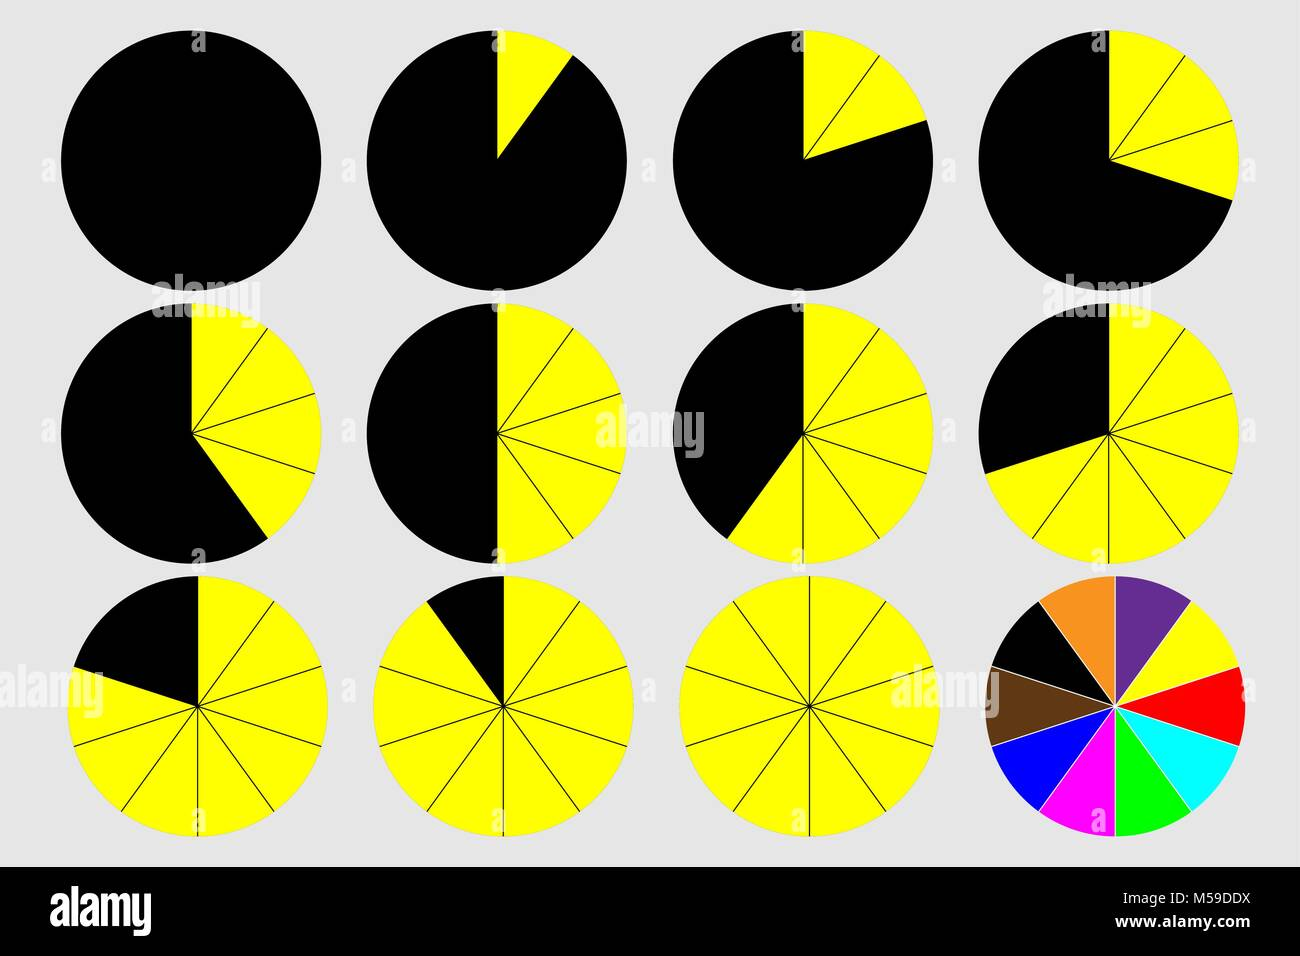 Chart Statistics Black Background Stock Photos Amp Chart